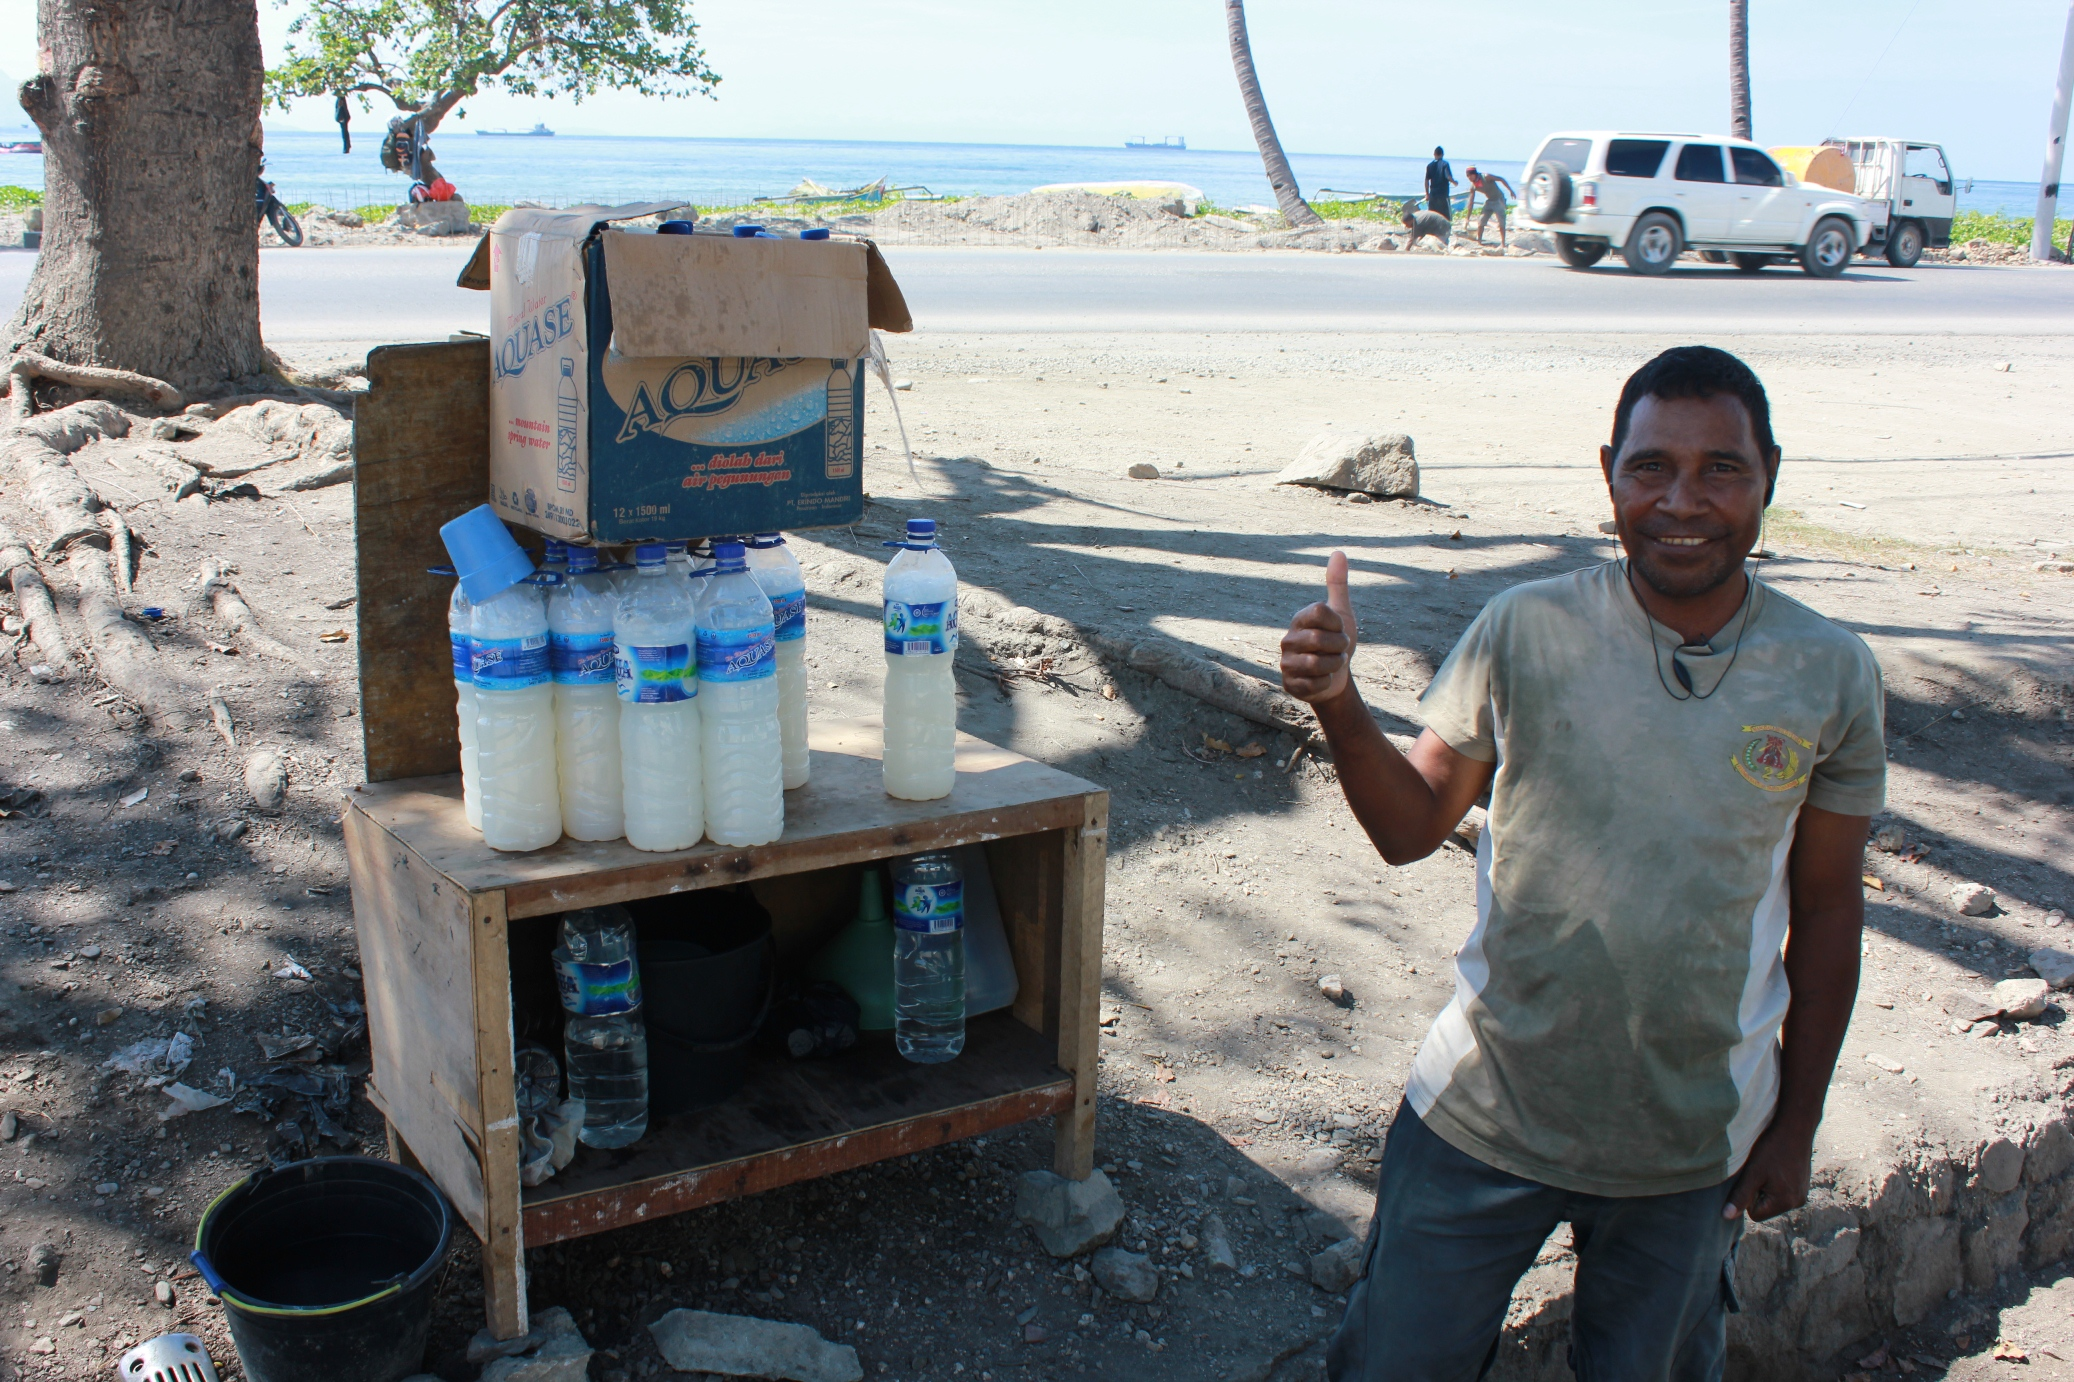 Local palm wine, tua mutin, sold along roadside in Timor-Leste. Alcohol-fuelled violence is a growing concern for officials though data is scarce